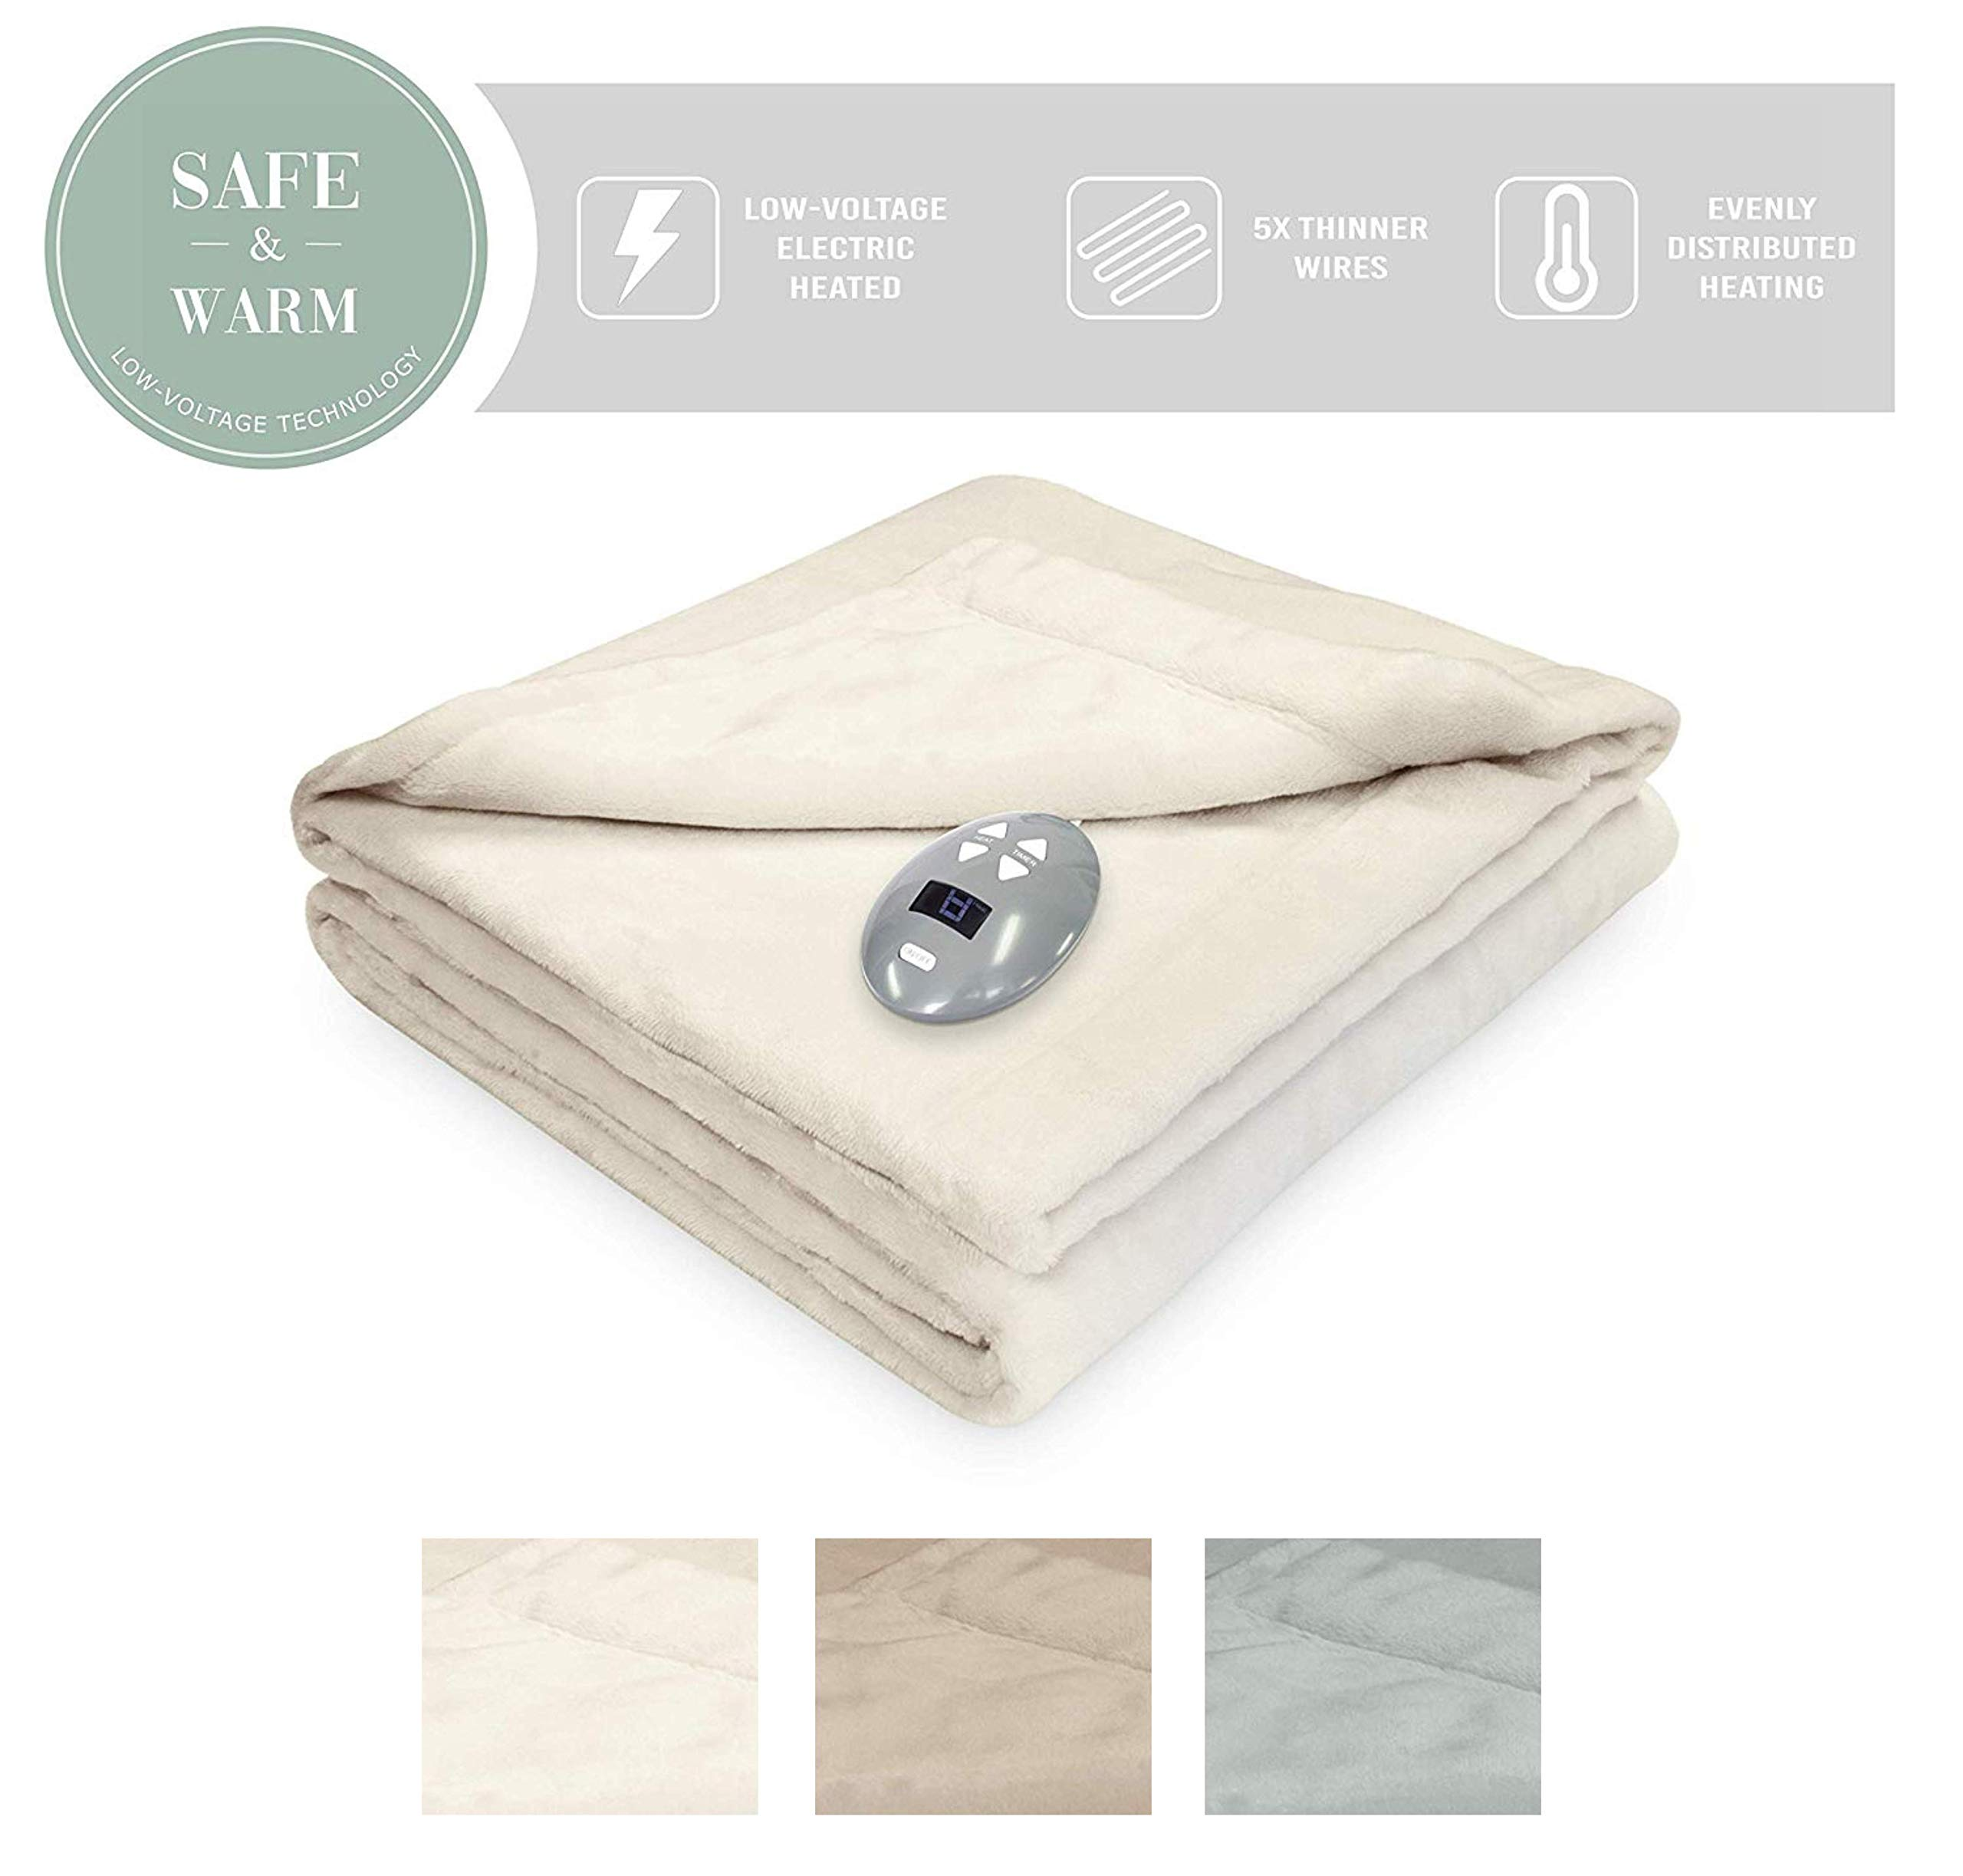 SoftHeat by Perfect Fit | Luxurious Velvet Plush Heated Electric Warming Blanket with Safe & Warm Low-Voltage Technology (Full, Natural Vanilla)